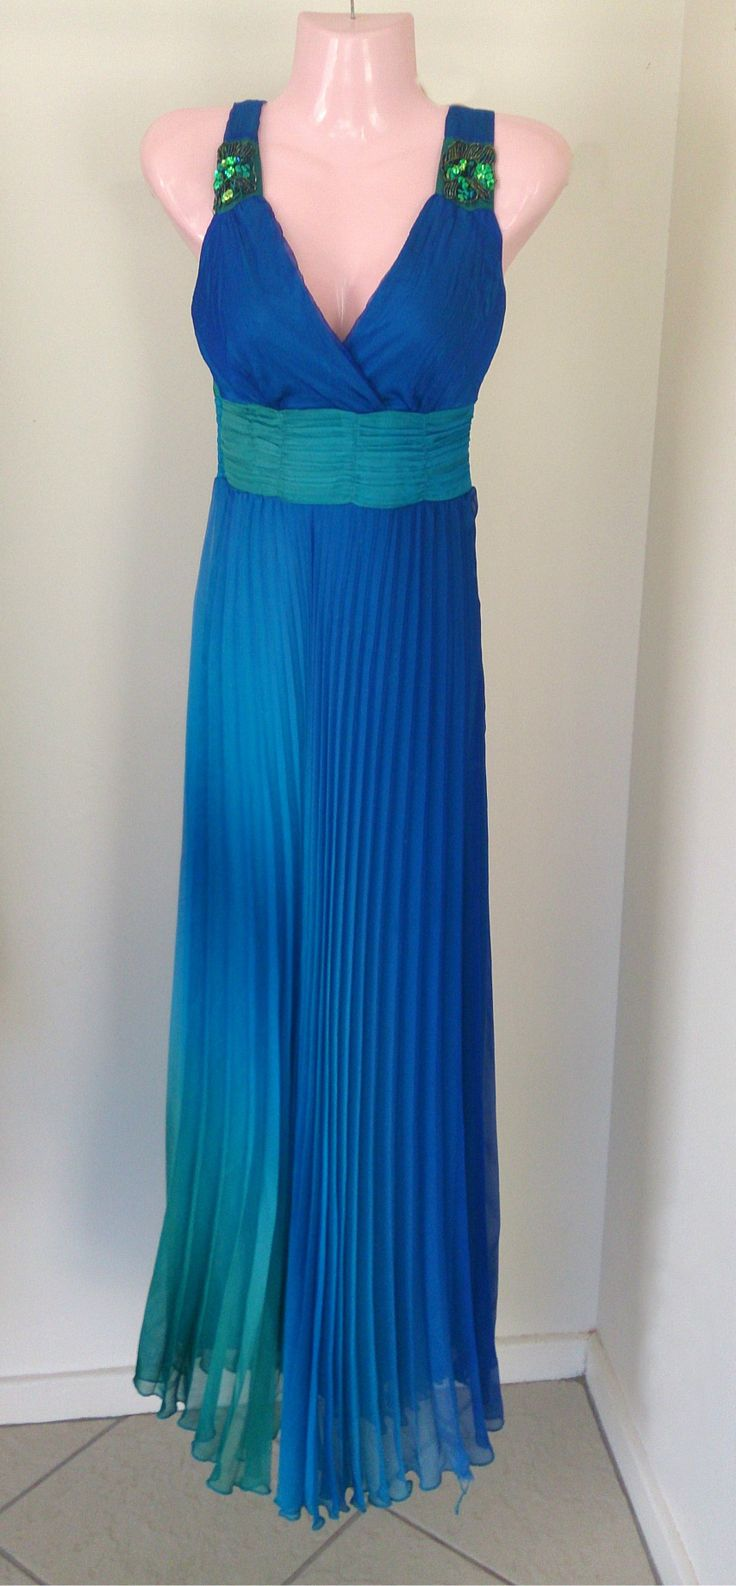 The Ocean blue dress. Available in size: 32